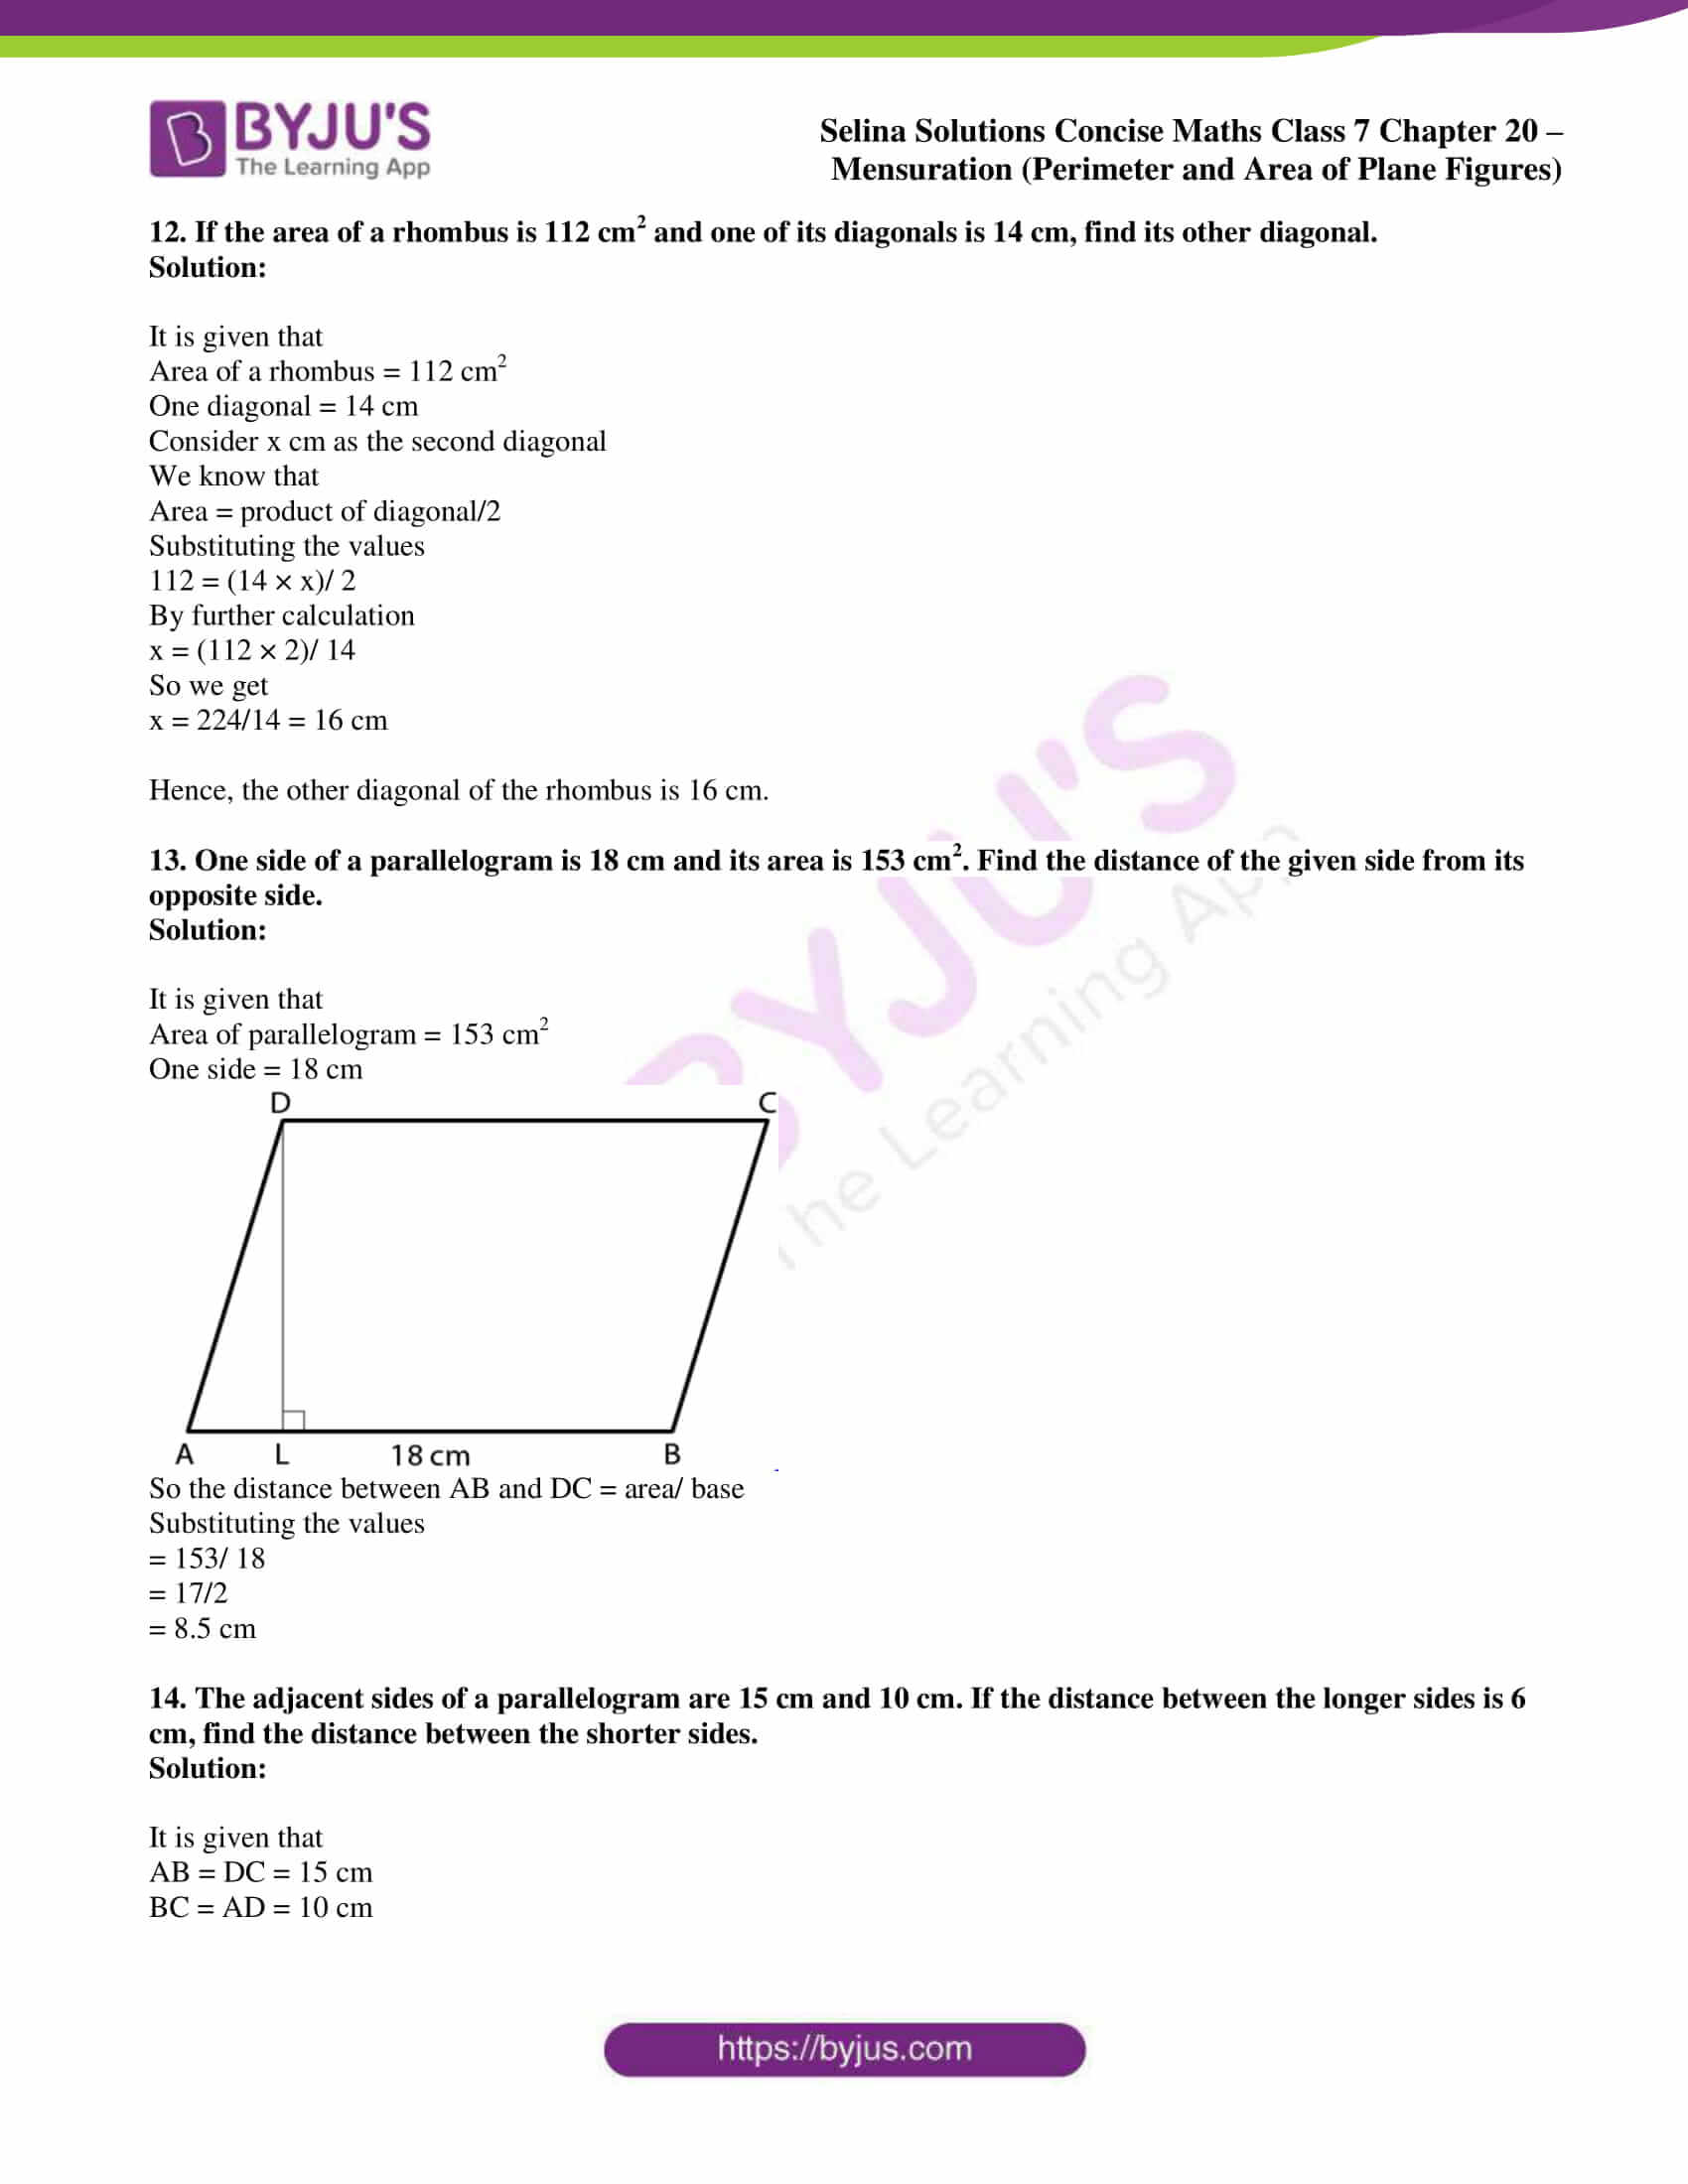 selina sol concise maths class 7 chapter 20 ex b 8